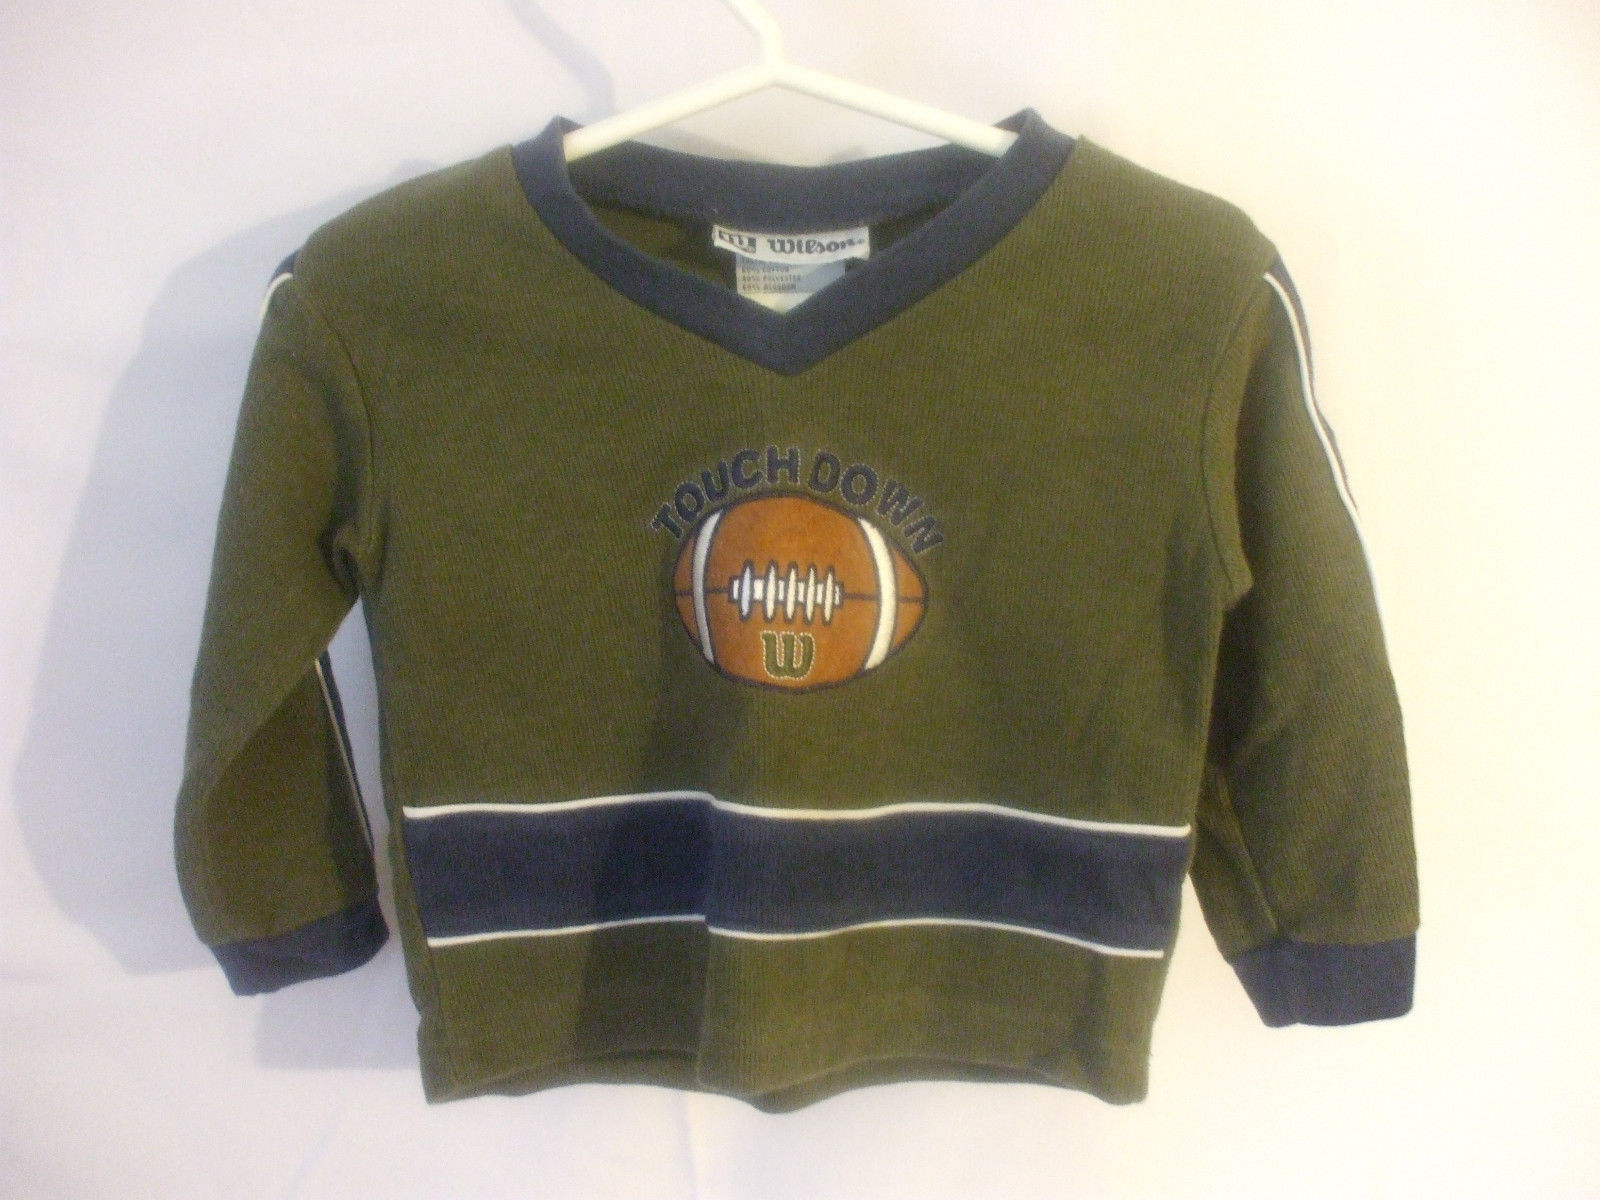 Toddlers Green Shirt Long Sleeves 18 Months Cotton Blend Wilson